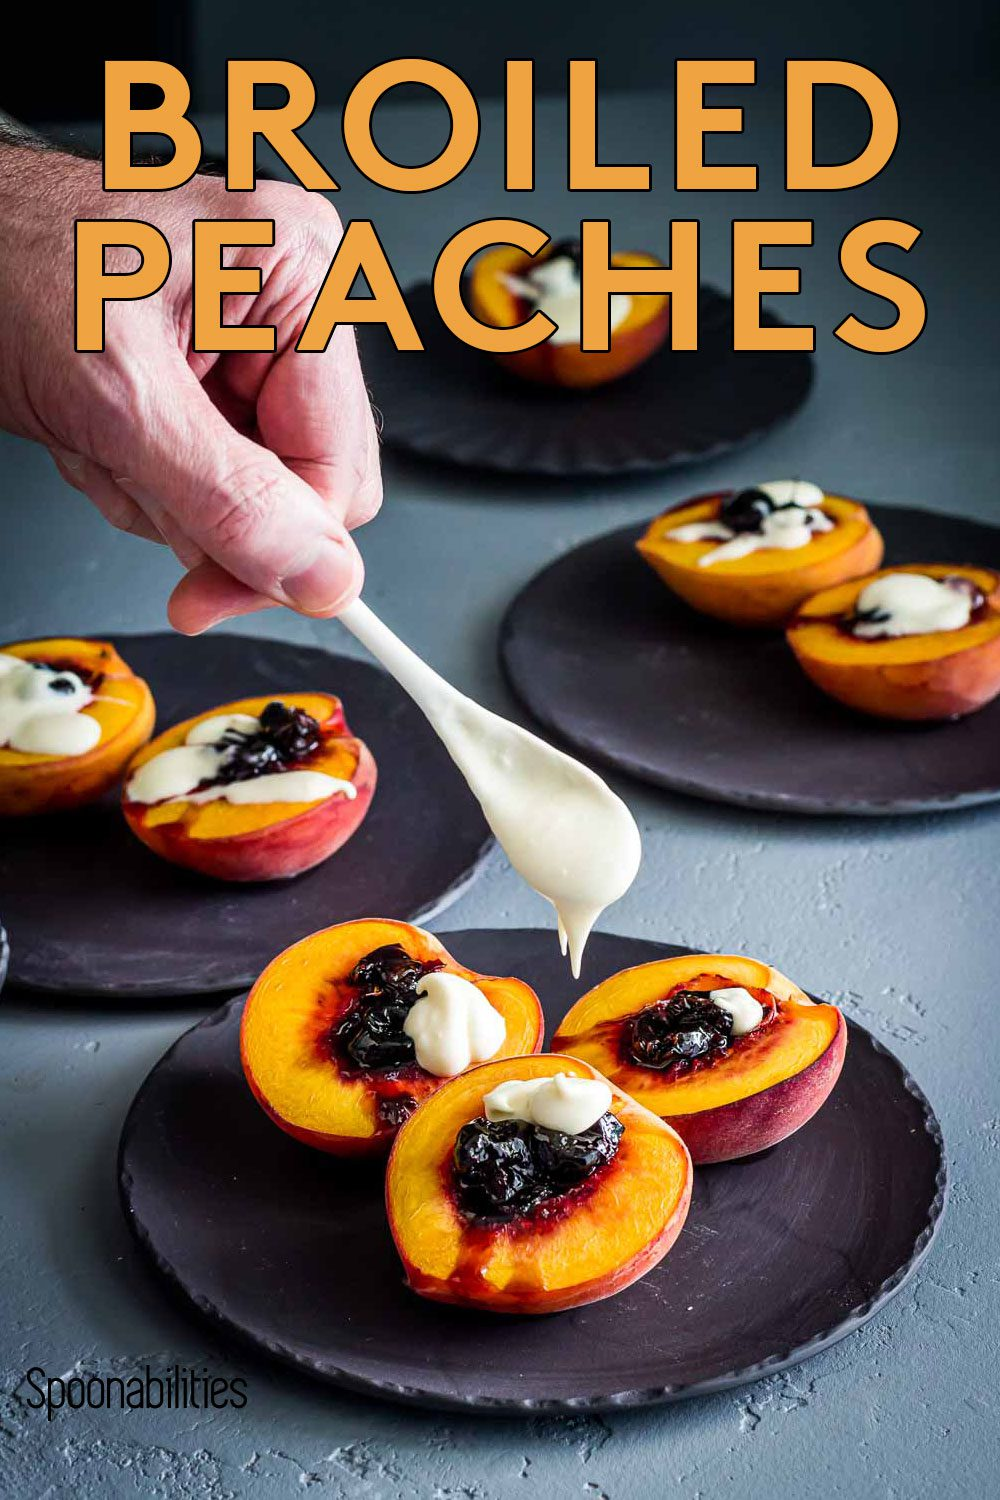 Broiled Peaches with Black Cherry Preserves and Crème Fraiche